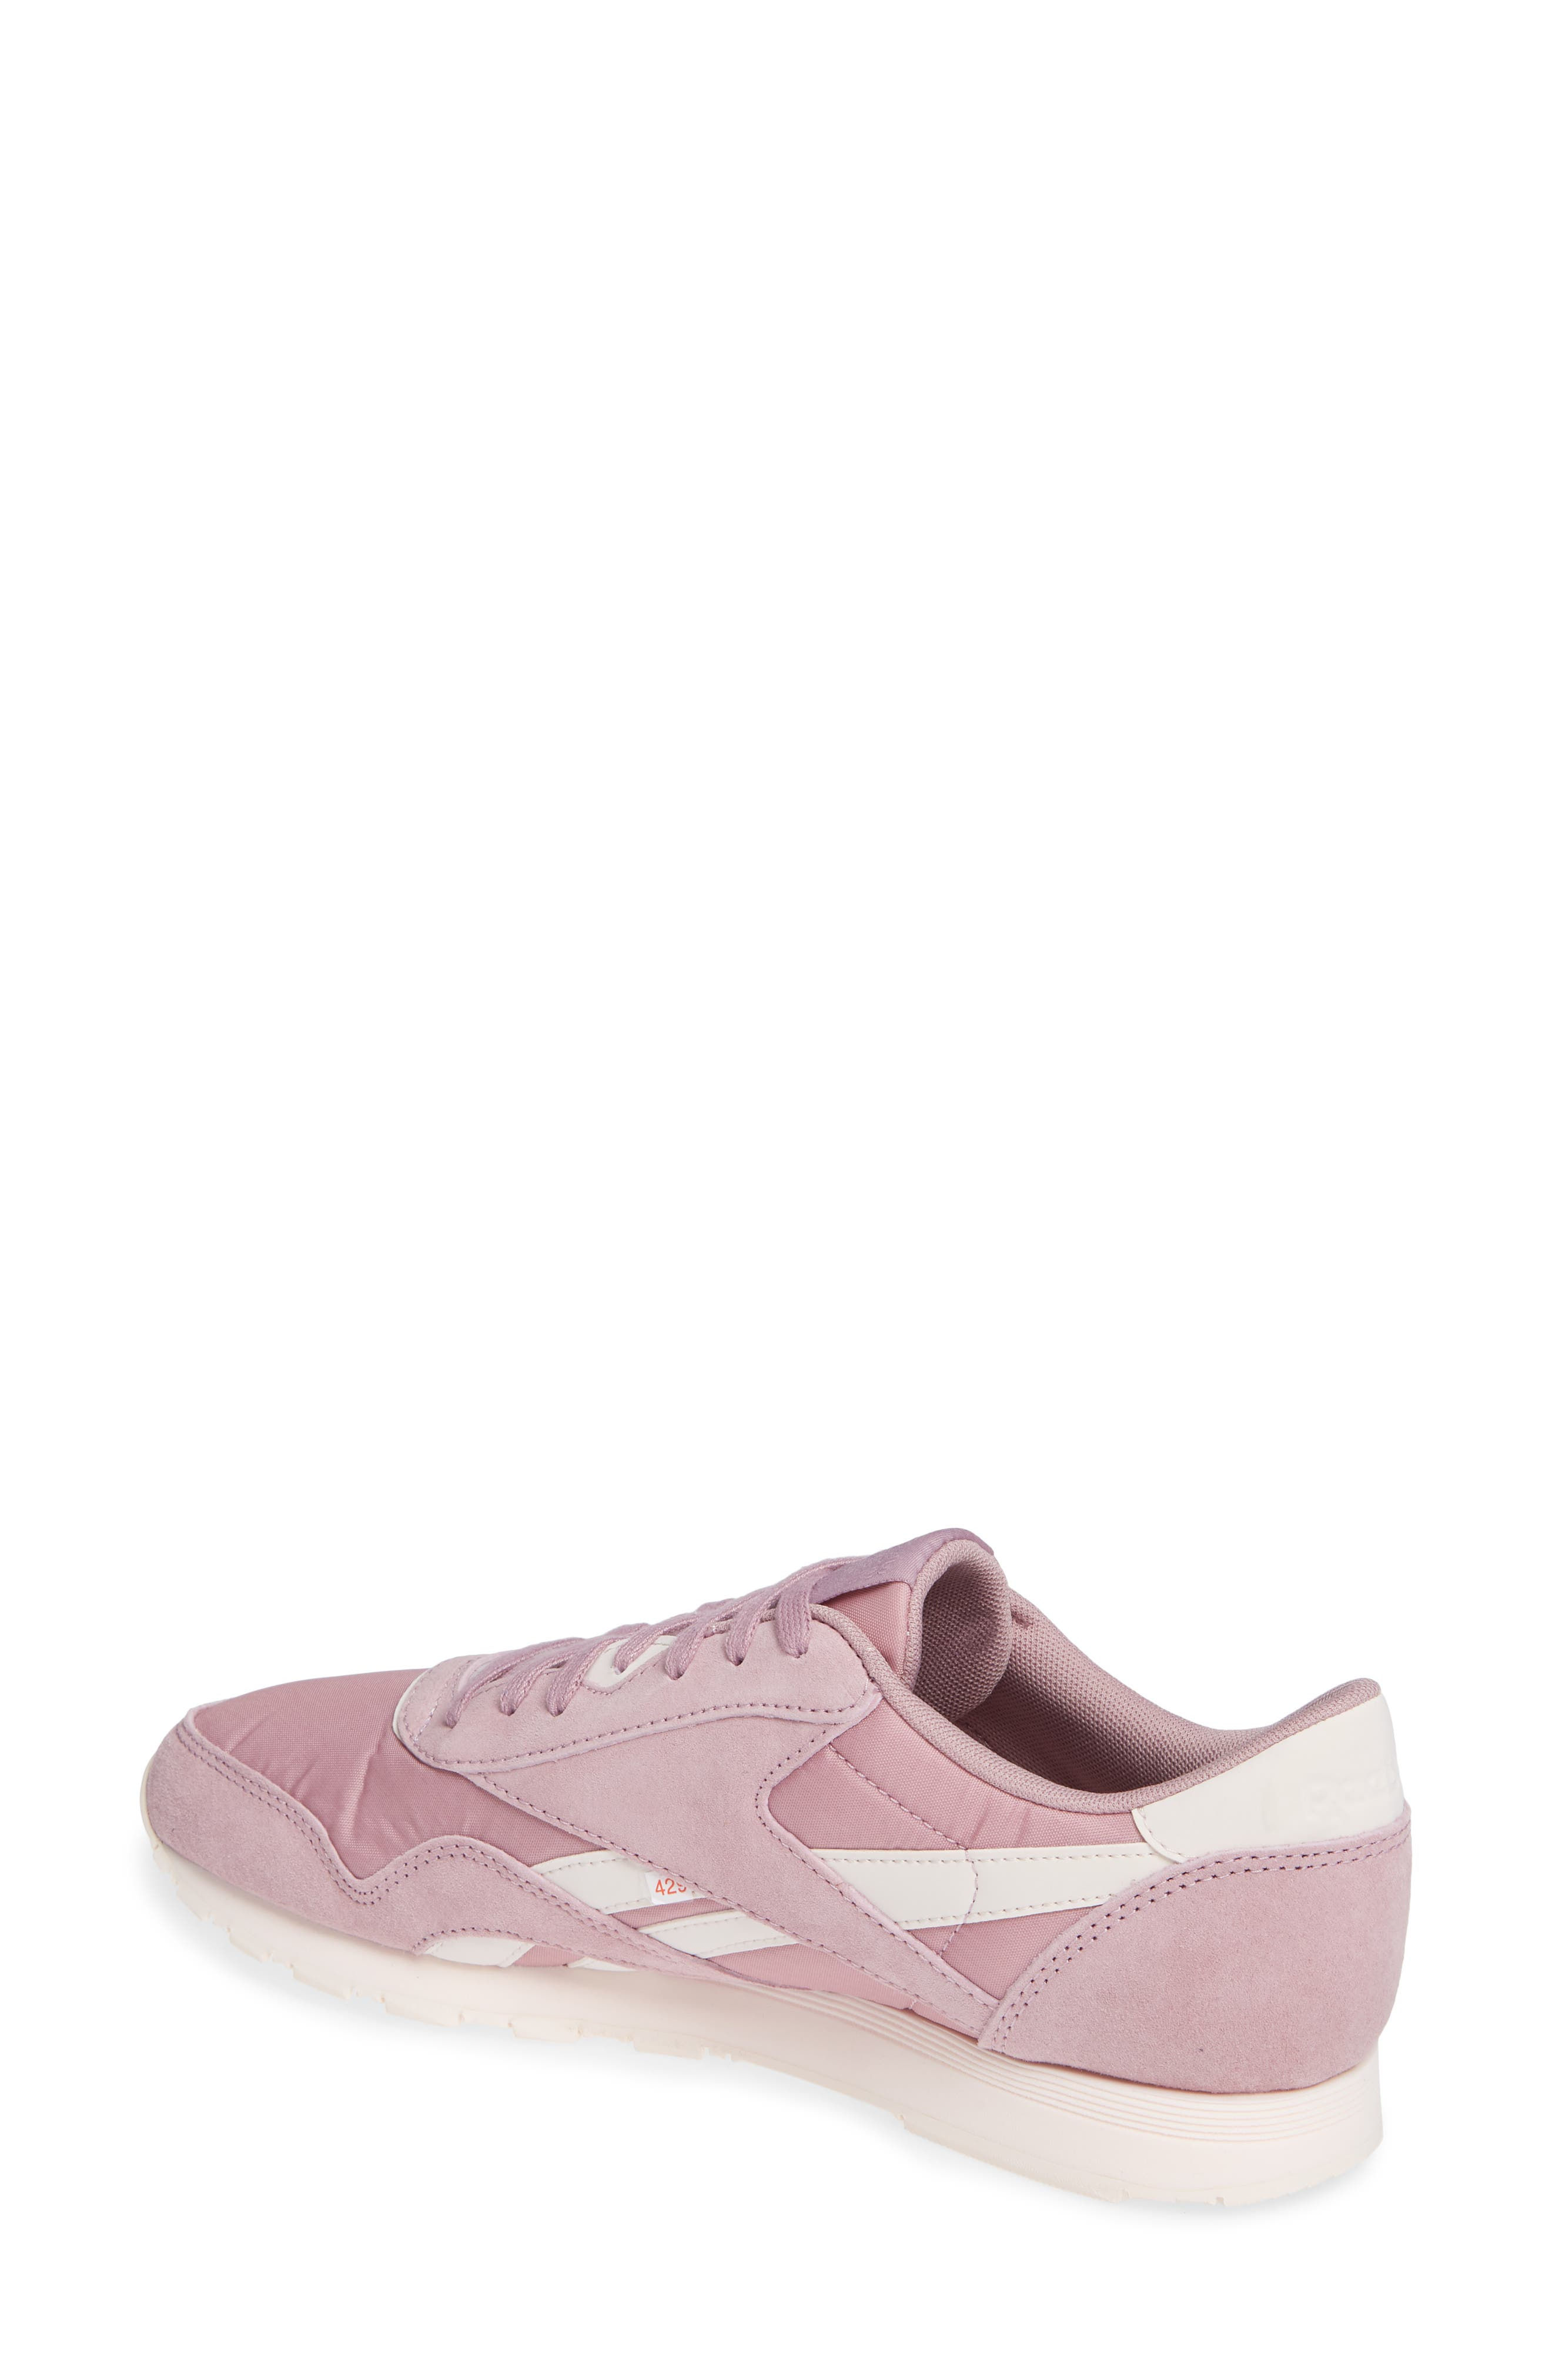 Classic Sneaker,                             Alternate thumbnail 2, color,                             INFUSED LILAC/ PALE PINK